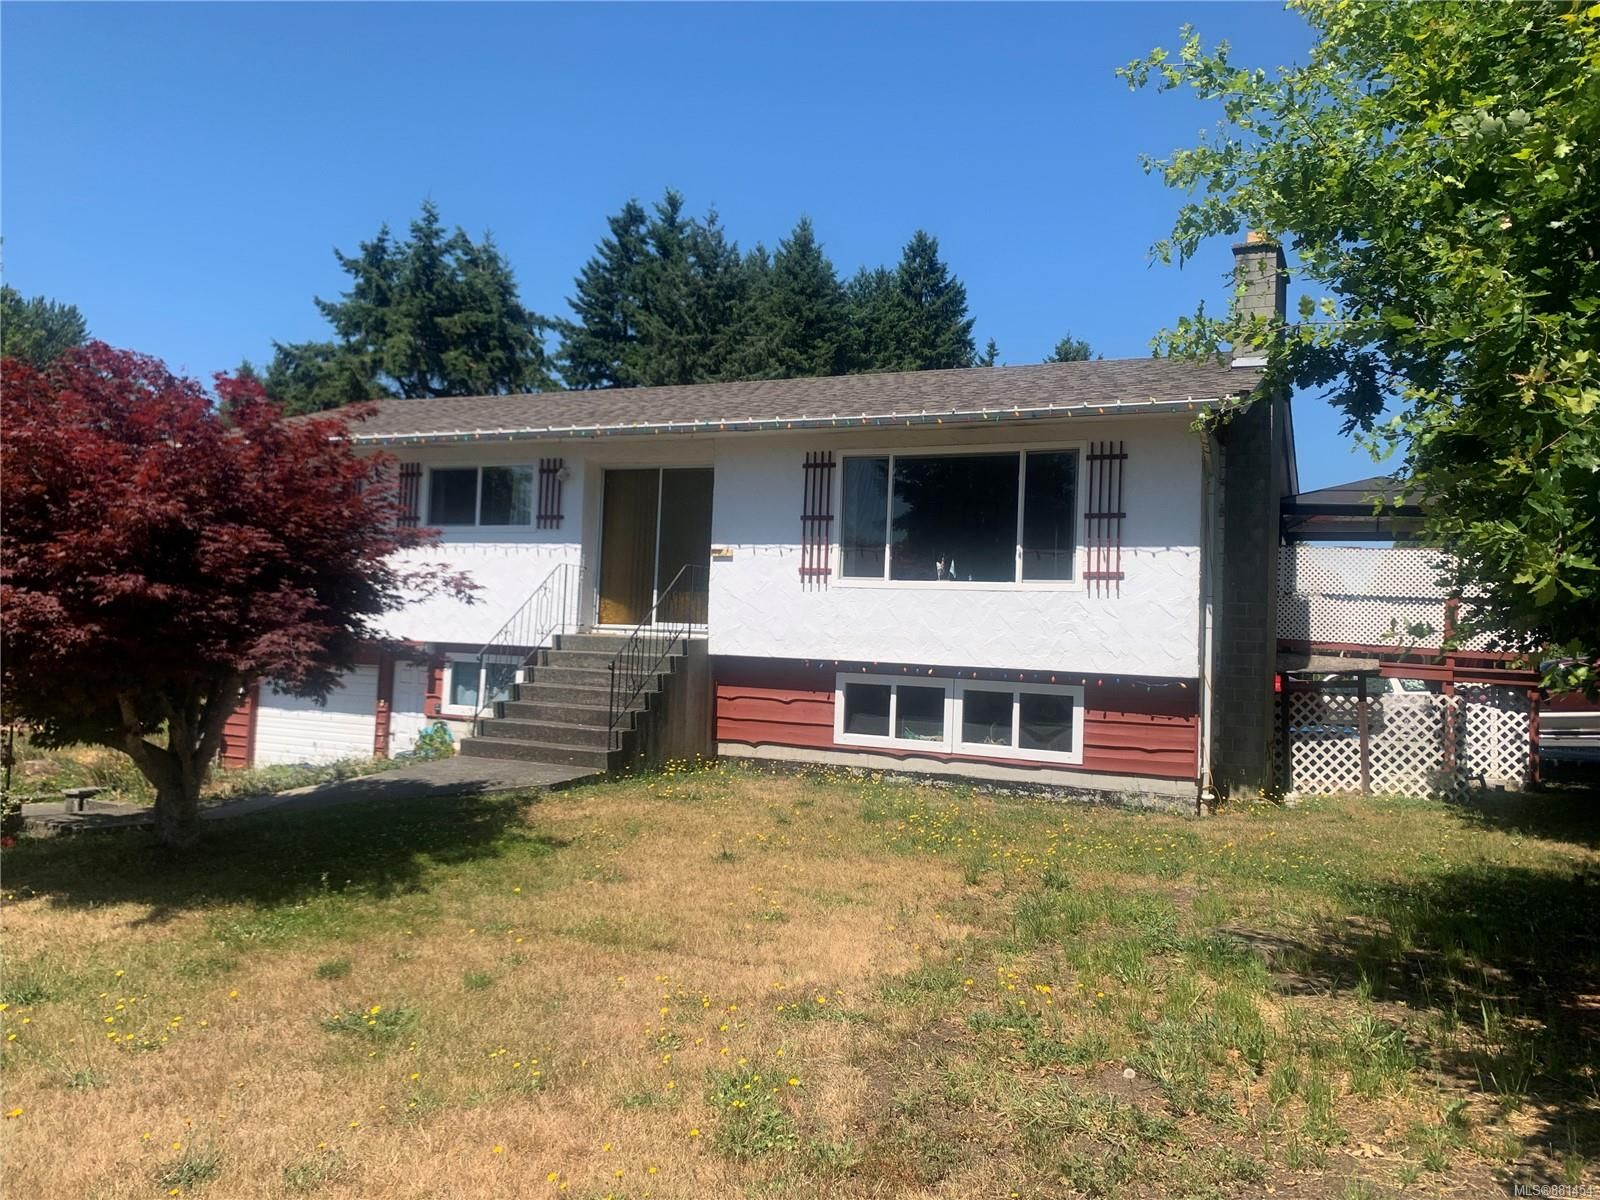 Main Photo: 1101 21st St in Courtenay: CV Courtenay City House for sale (Comox Valley)  : MLS®# 881454